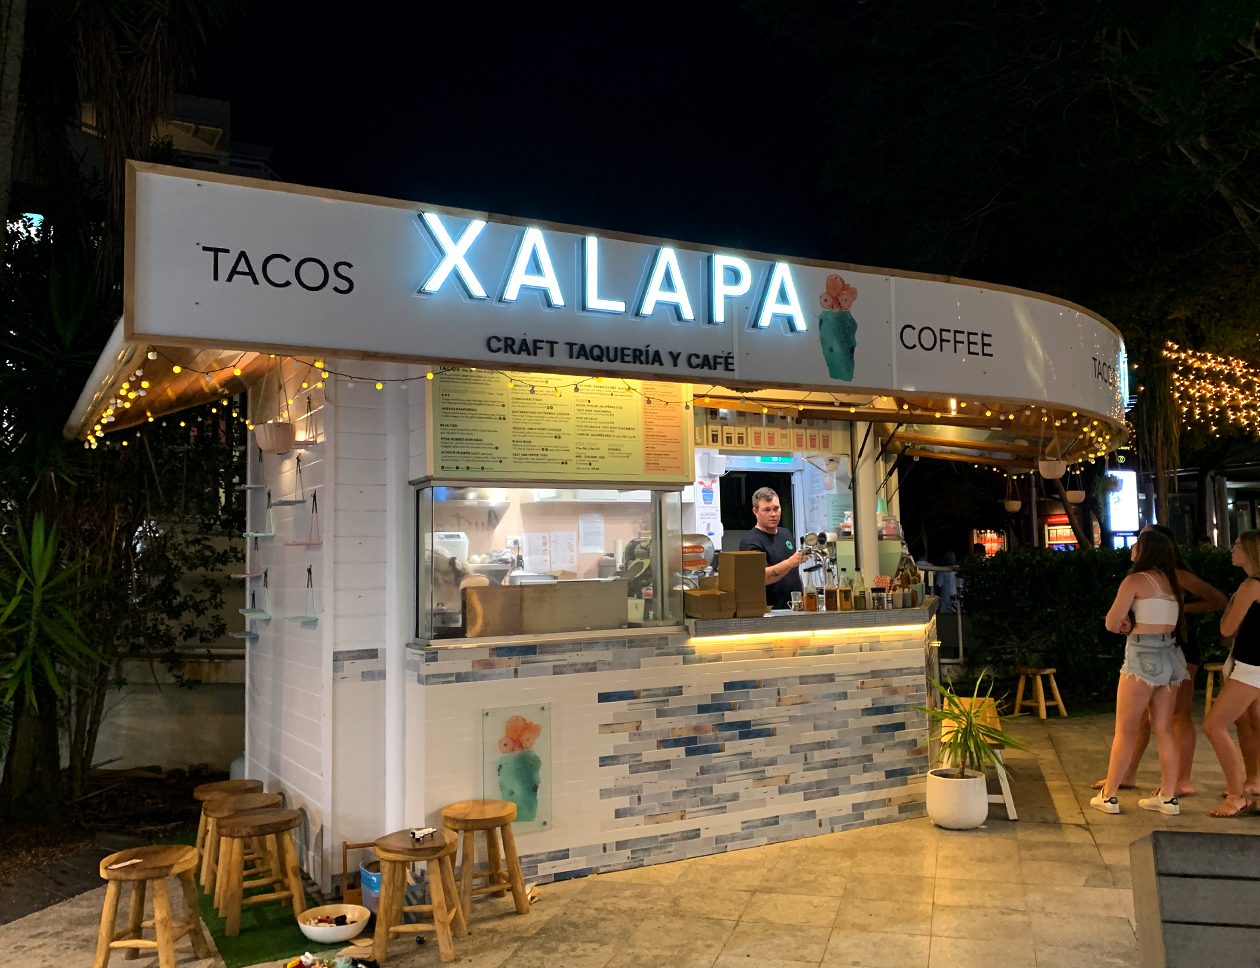 Xalapa illuminated front sign